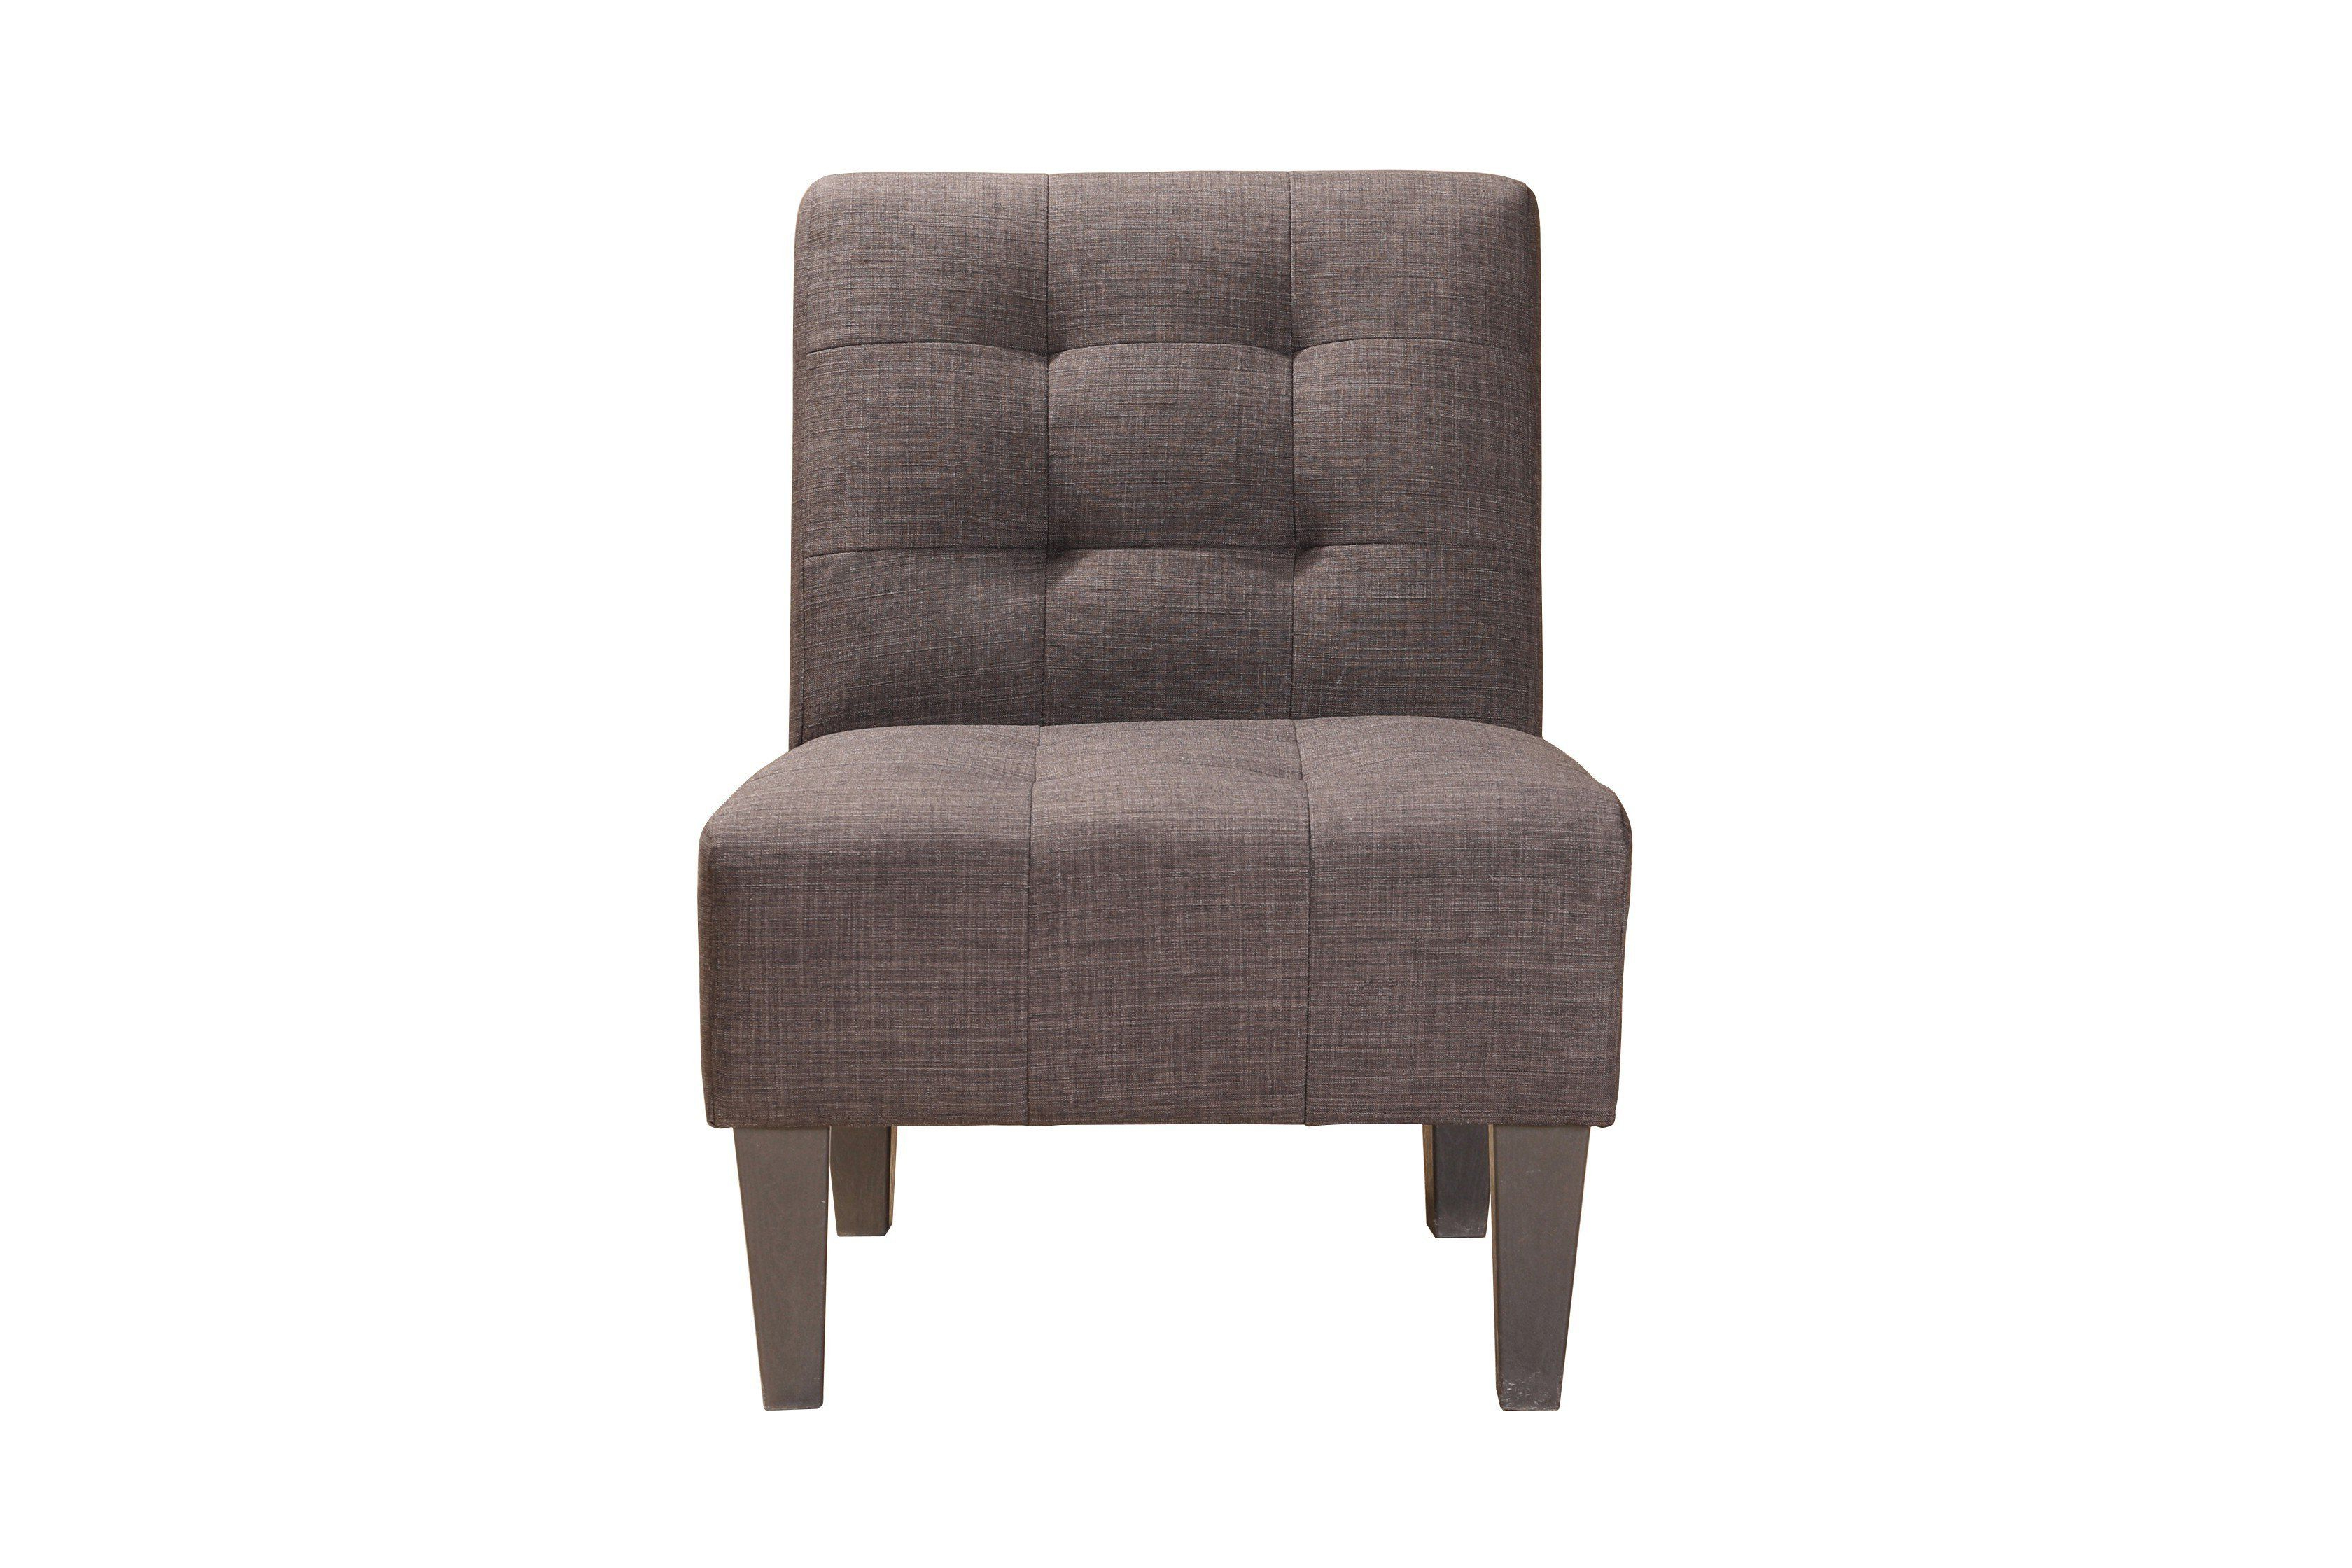 Widely Used Sheldon Oversized Sofa Chairs Throughout Sheldon Accent Chair Charcoal #accentchair (Gallery 10 of 20)